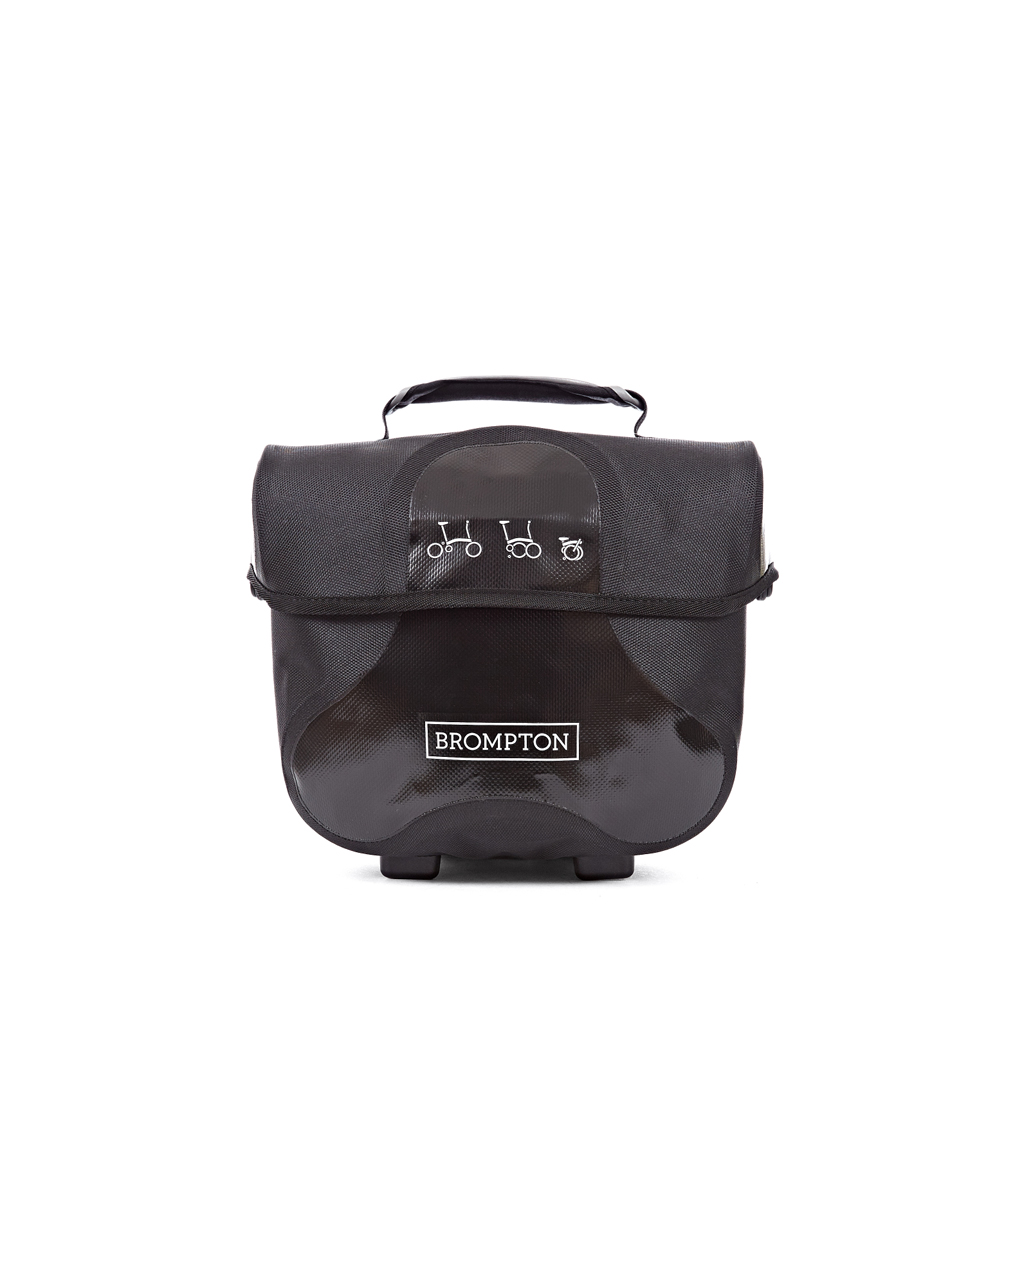 Q-Parts - Mini O Bag - Black